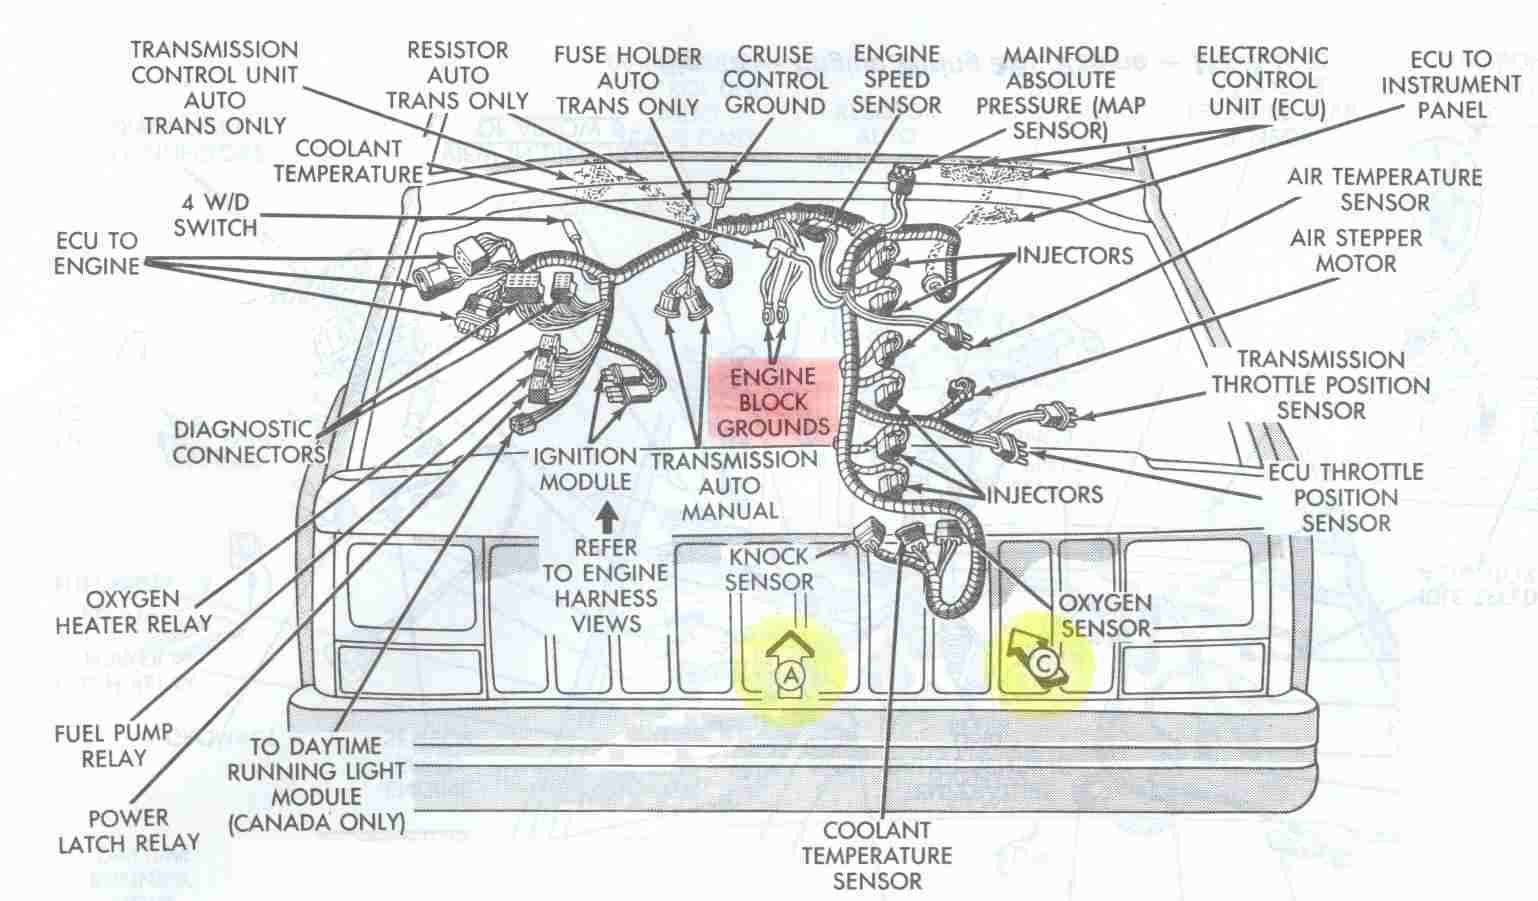 wiring diagram for 1989 jeep wrangler wiring image wiring harness diagram for 1995 jeep wrangler the wiring diagram on wiring diagram for 1989 jeep